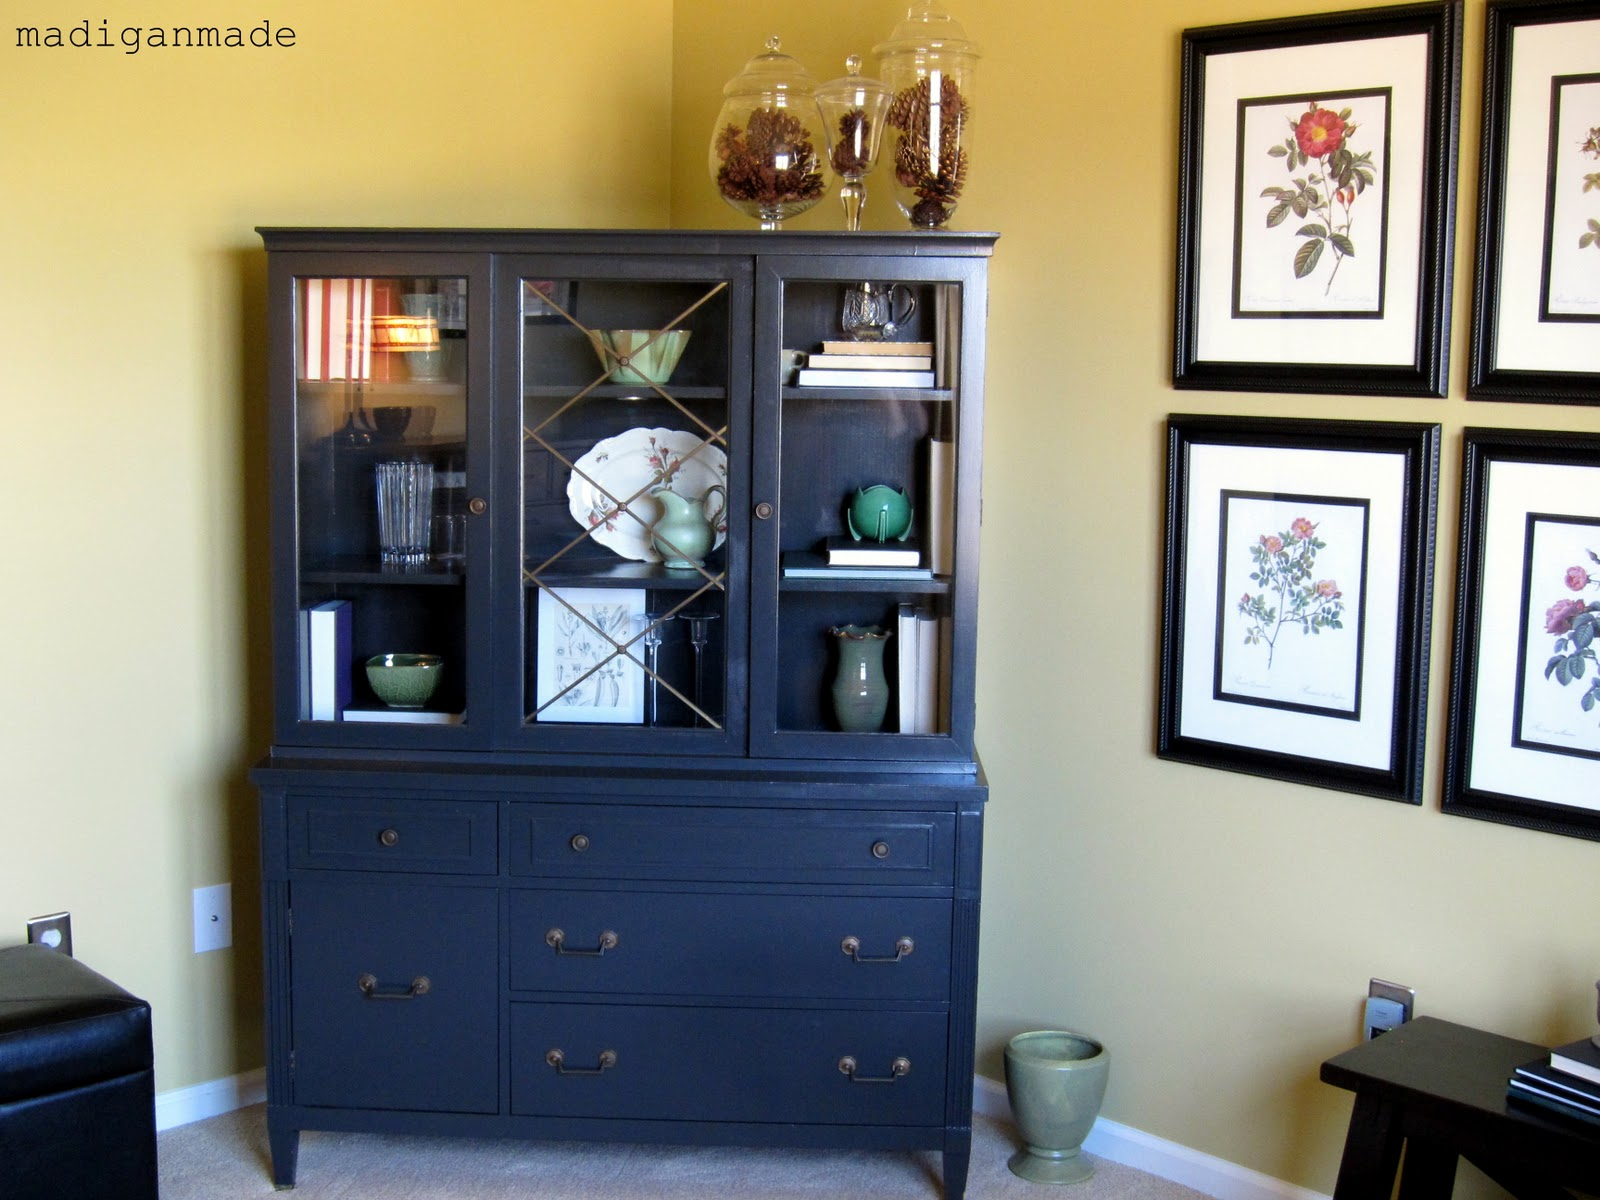 Re-styling my china-cabinet-posing-as-a-library-cabinet ...